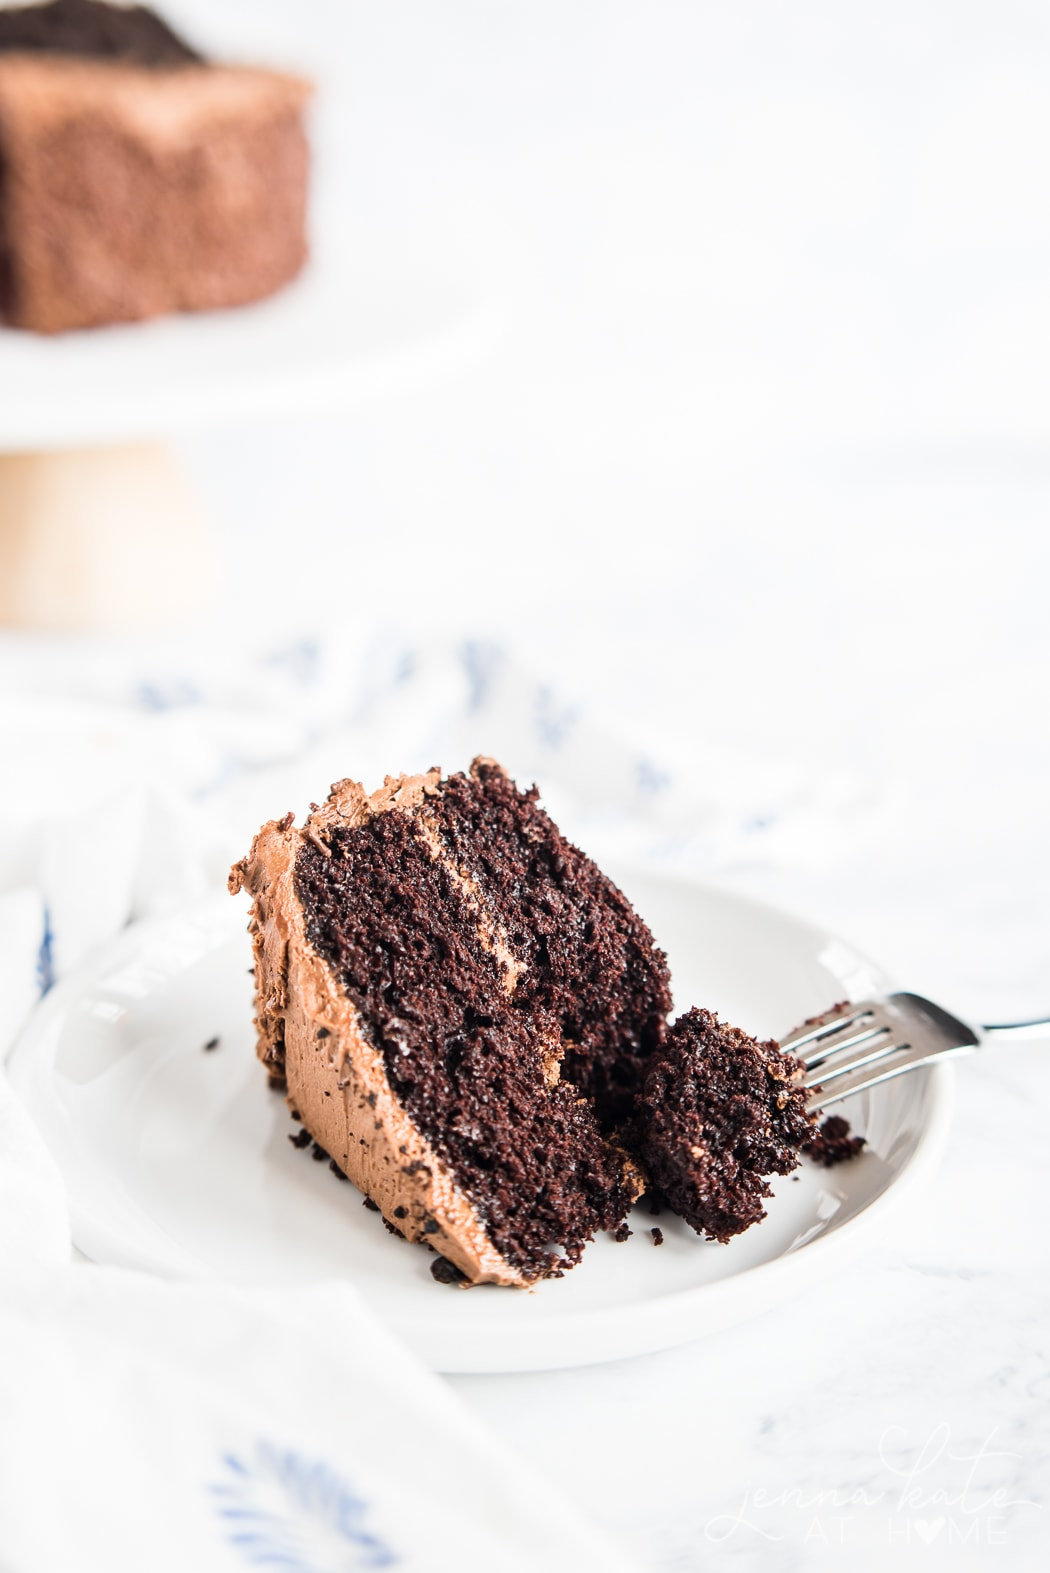 Light and fluffy chocolate cake thanks to ingredients like coffee and buttermilk